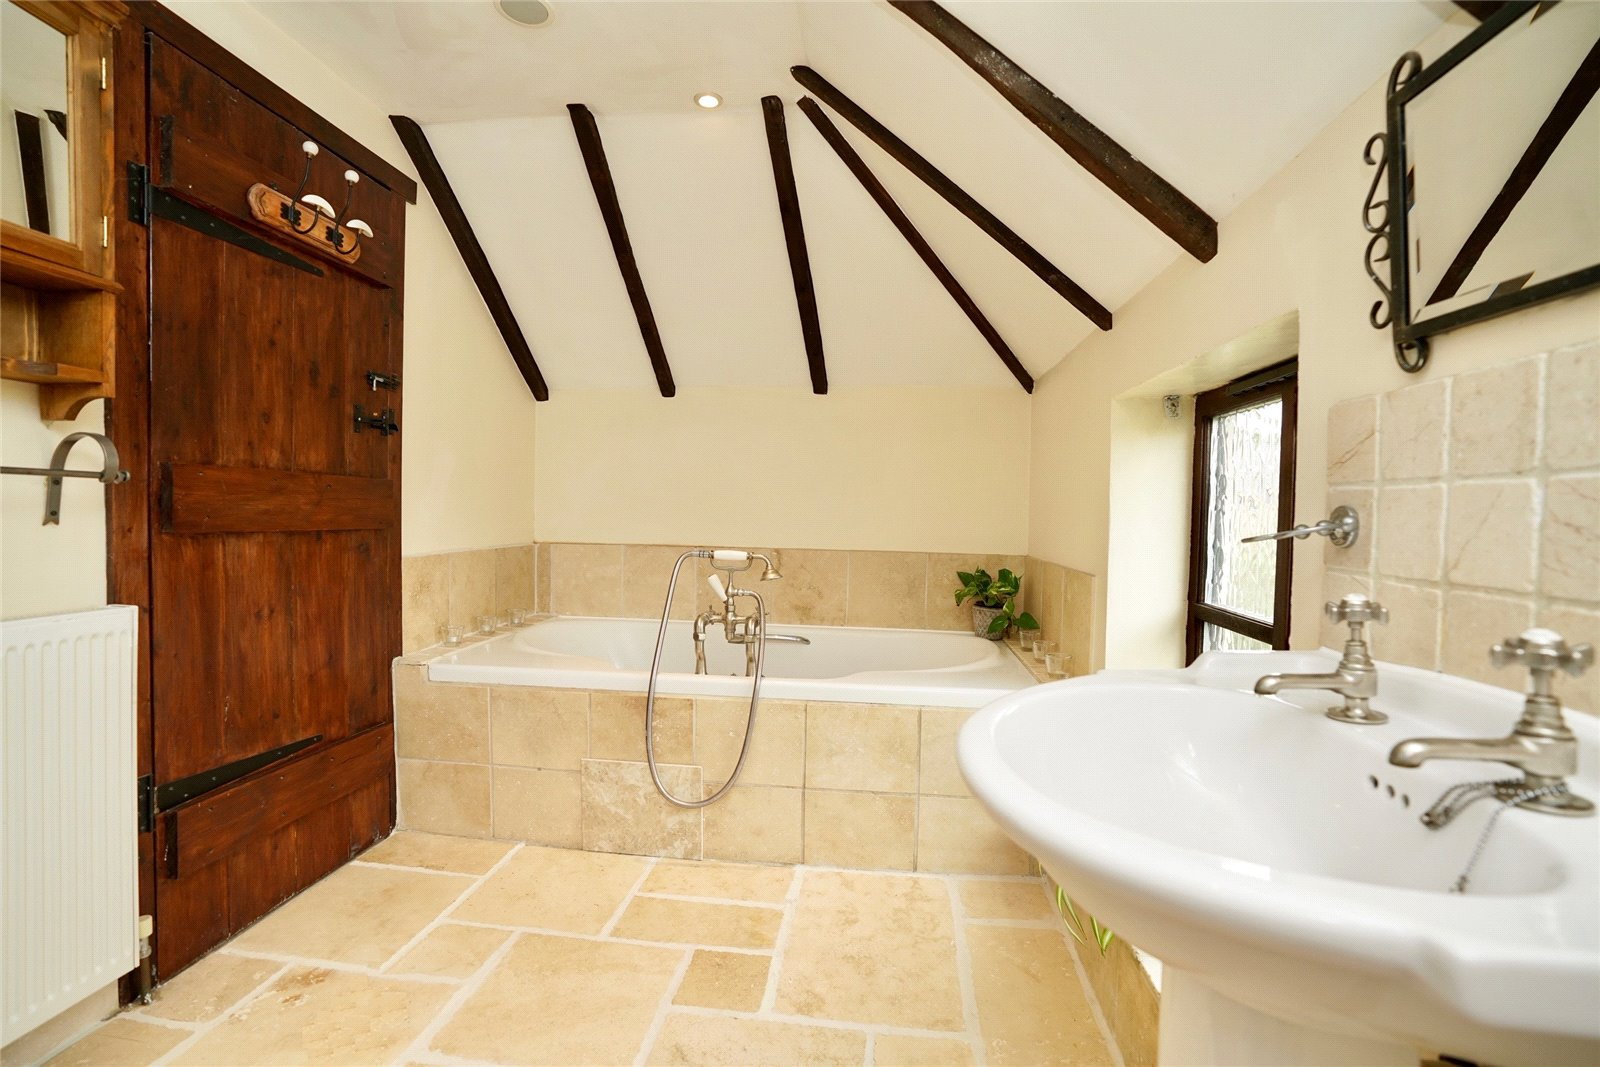 5 bed house for sale in Colmworth Road, Little Staughton  - Property Image 10